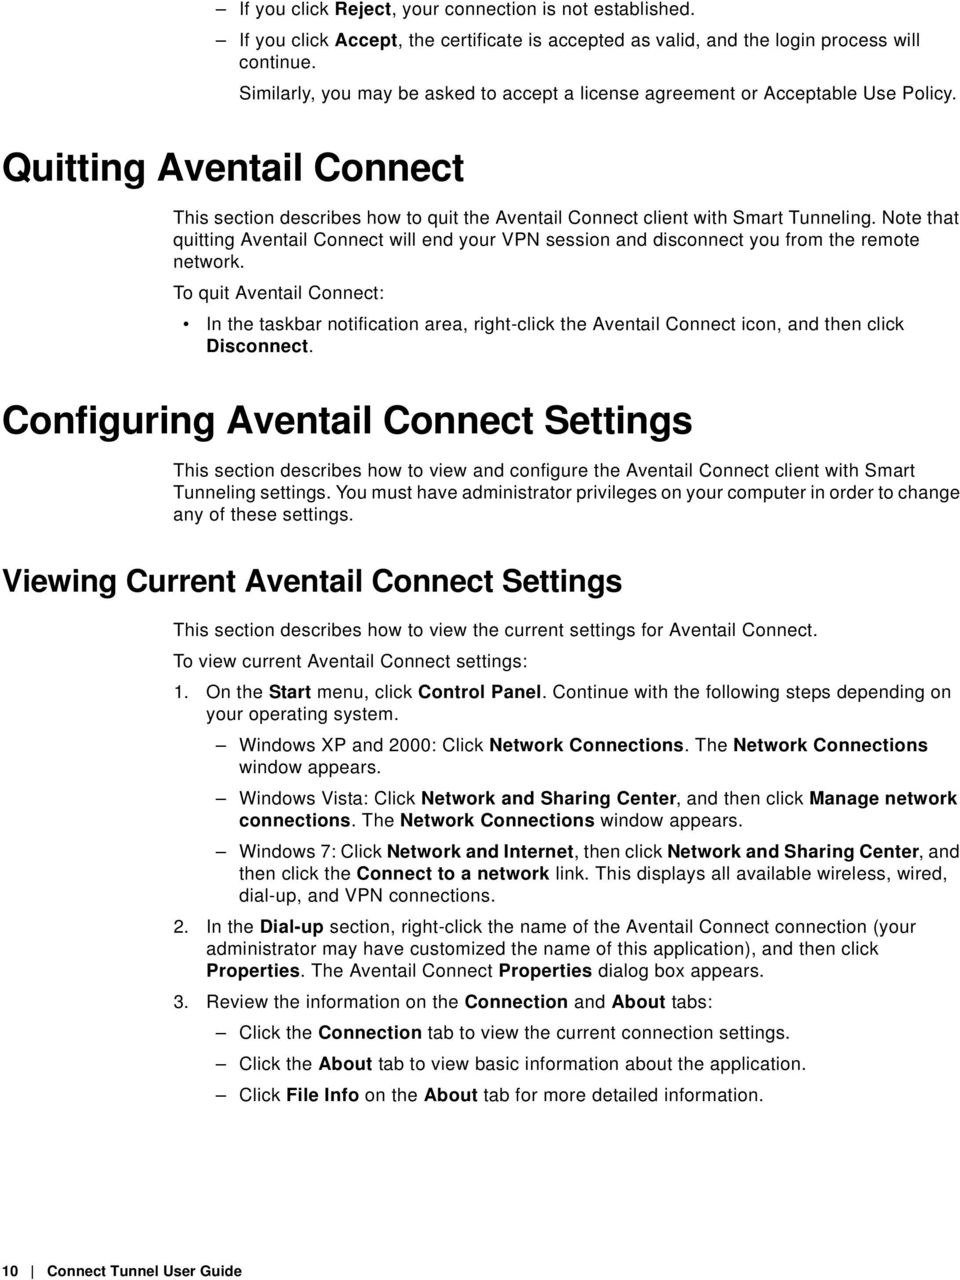 Note that quitting Aventail Connect will end your VPN session and disconnect you from the remote network.